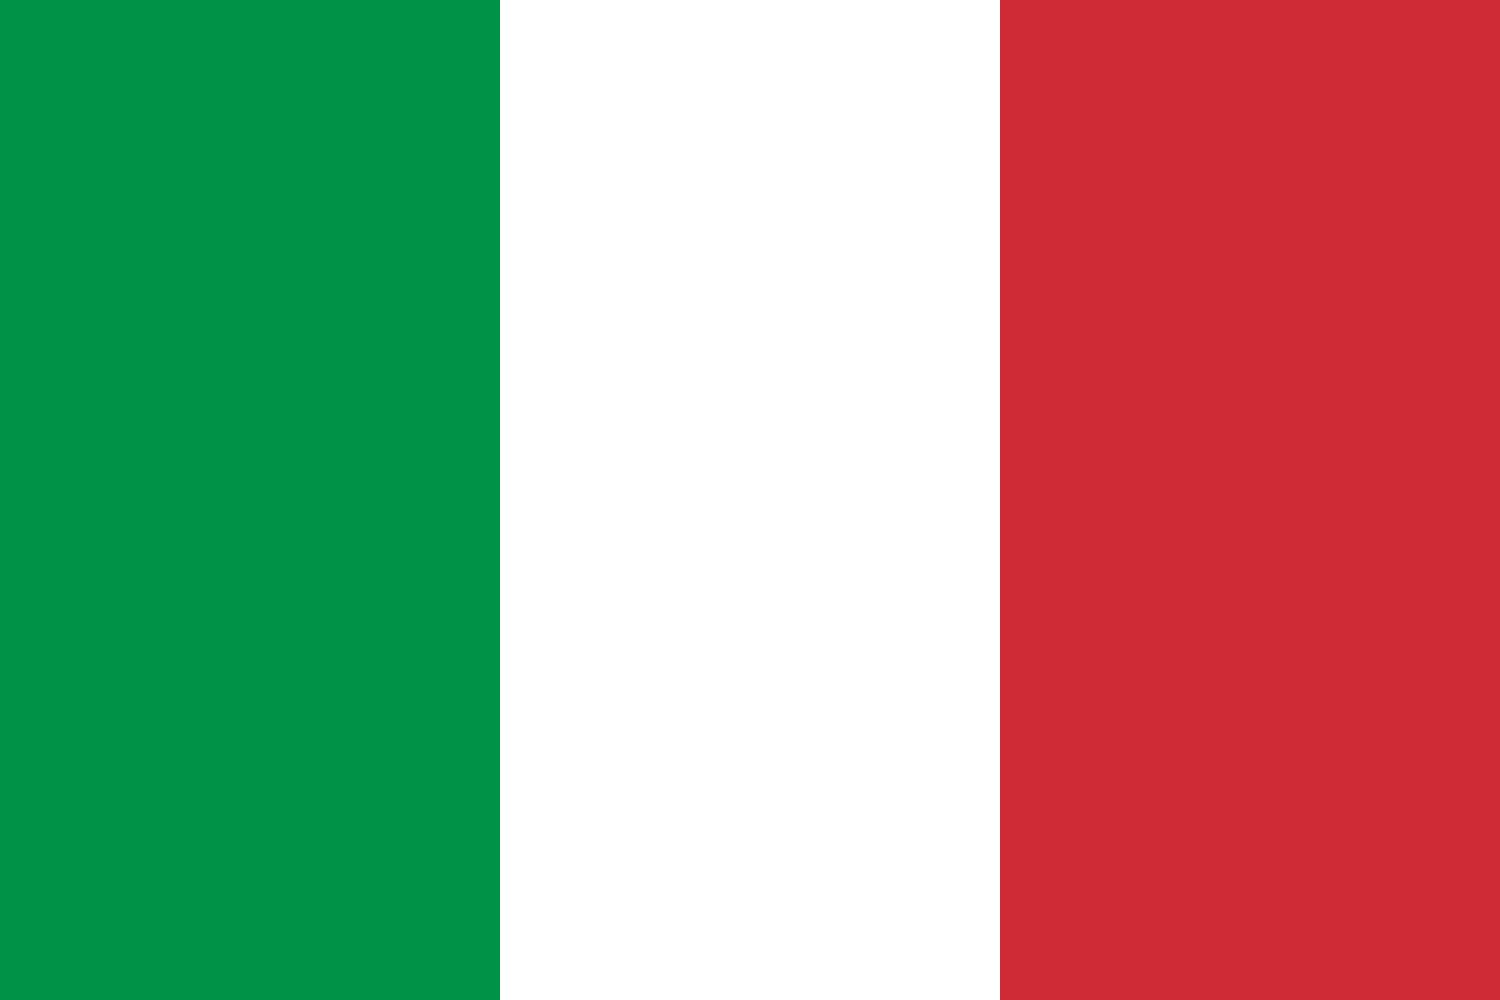 Bandiera tricolore italiano